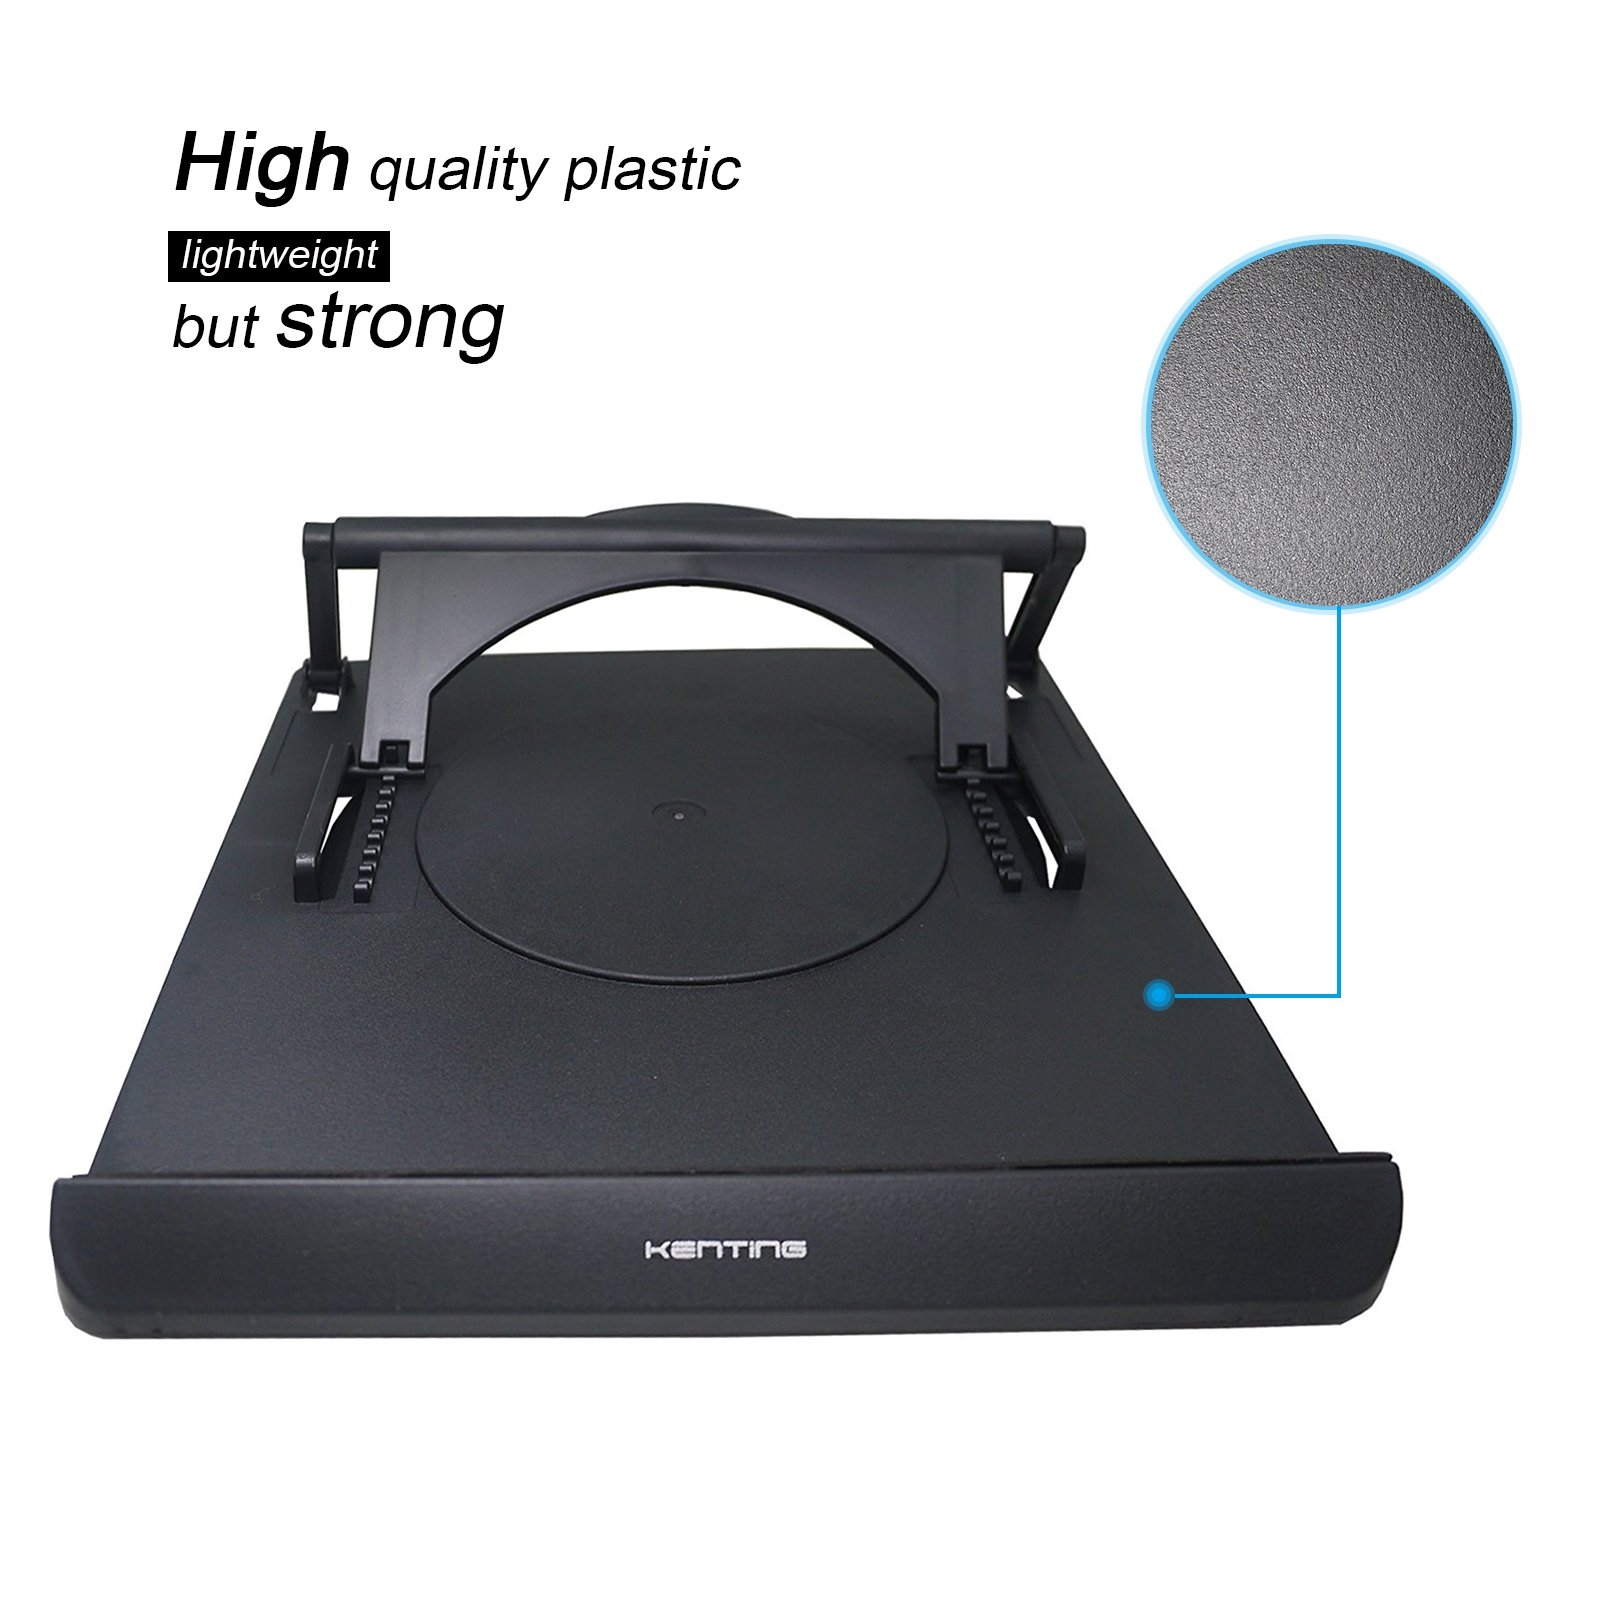 Light Box Pad Stander Kenting Multifunction Rotate in 360° Adjusting 9 Angle Points Skidding Prevented Tracing Holder for Huion/Litup LED Light Table A4 LB4 L4S - Black